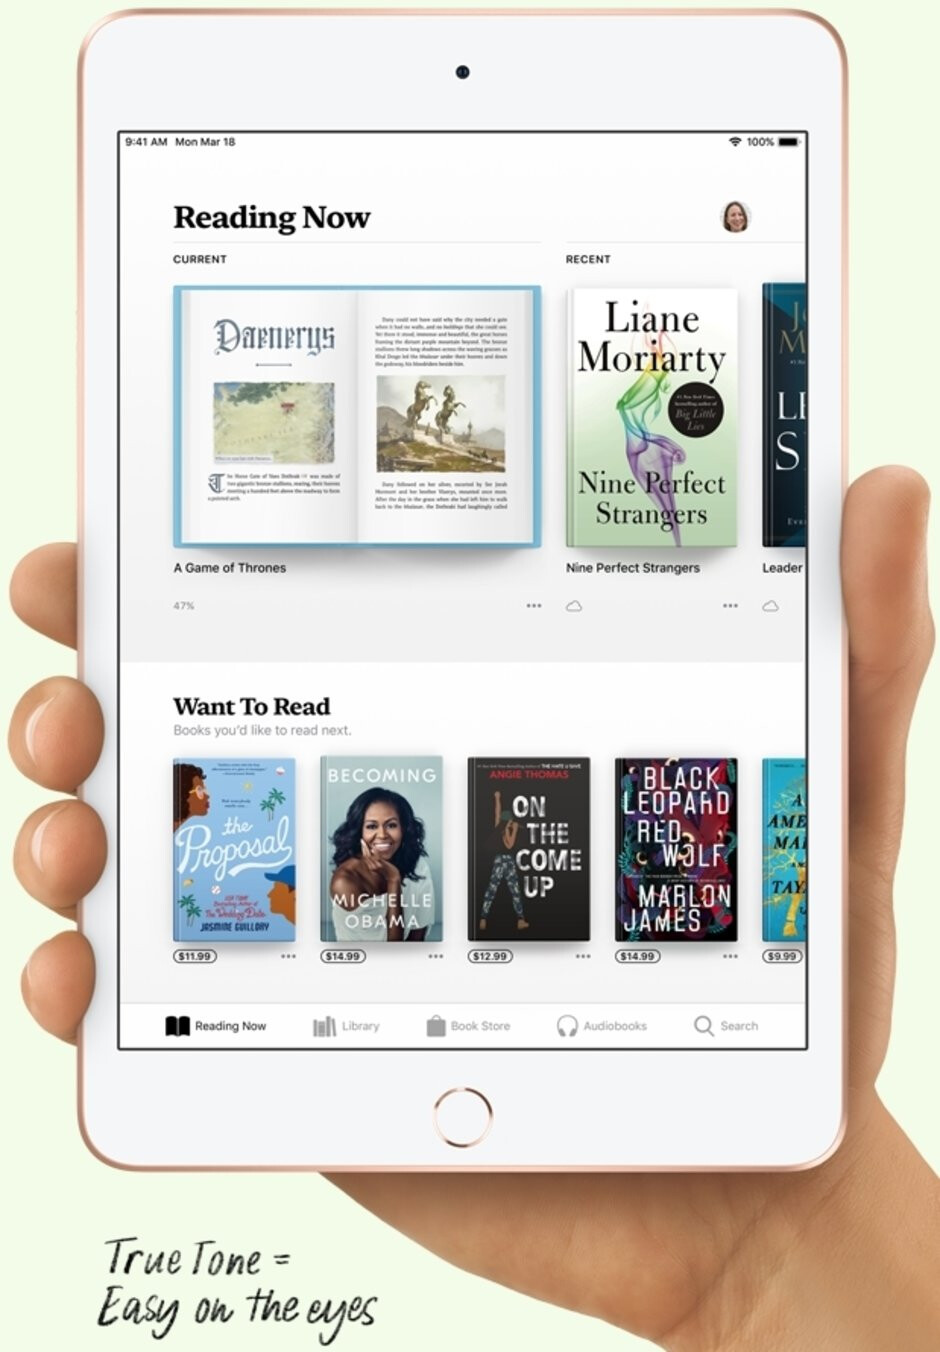 Apple upgrades the iPad mini screen in time for its grand video service unveiling - Apple iPad mini 2019 brings powerful A12 processor and Pencil support in a retro package